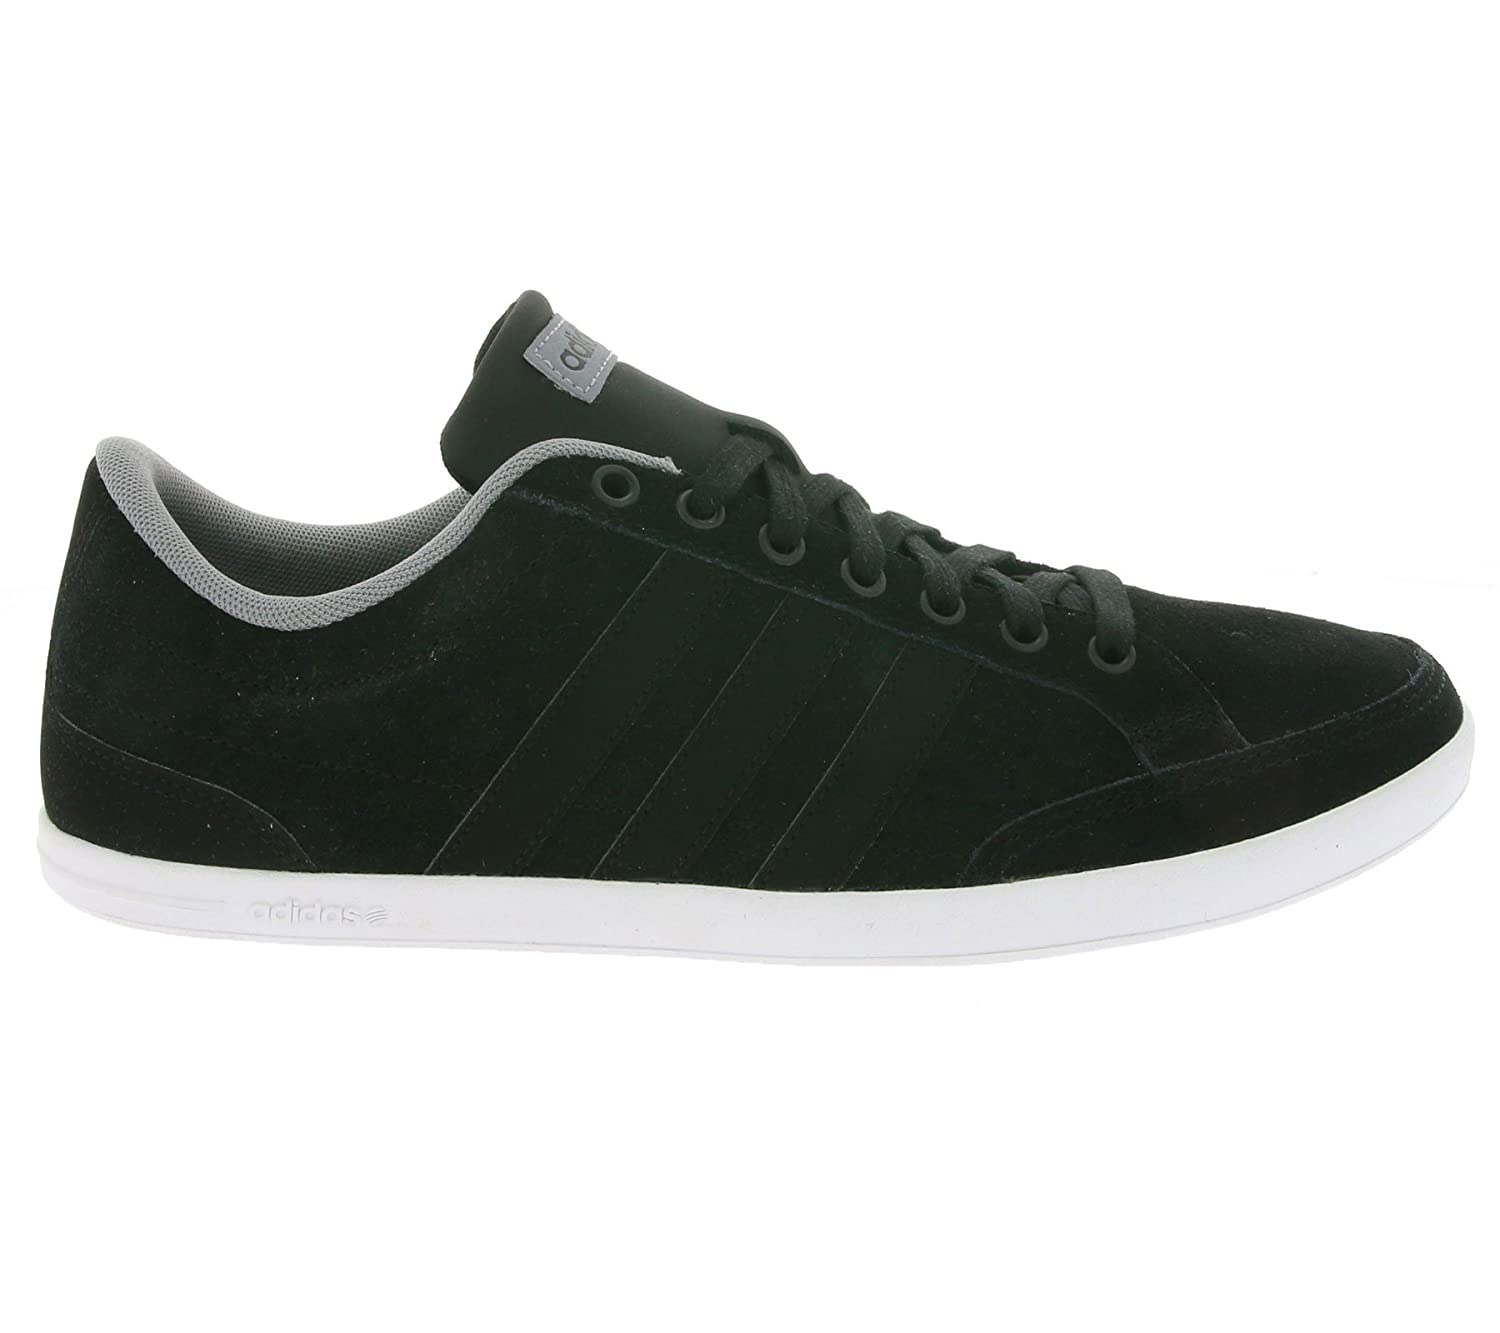 adidas neo men's caflaire trainers